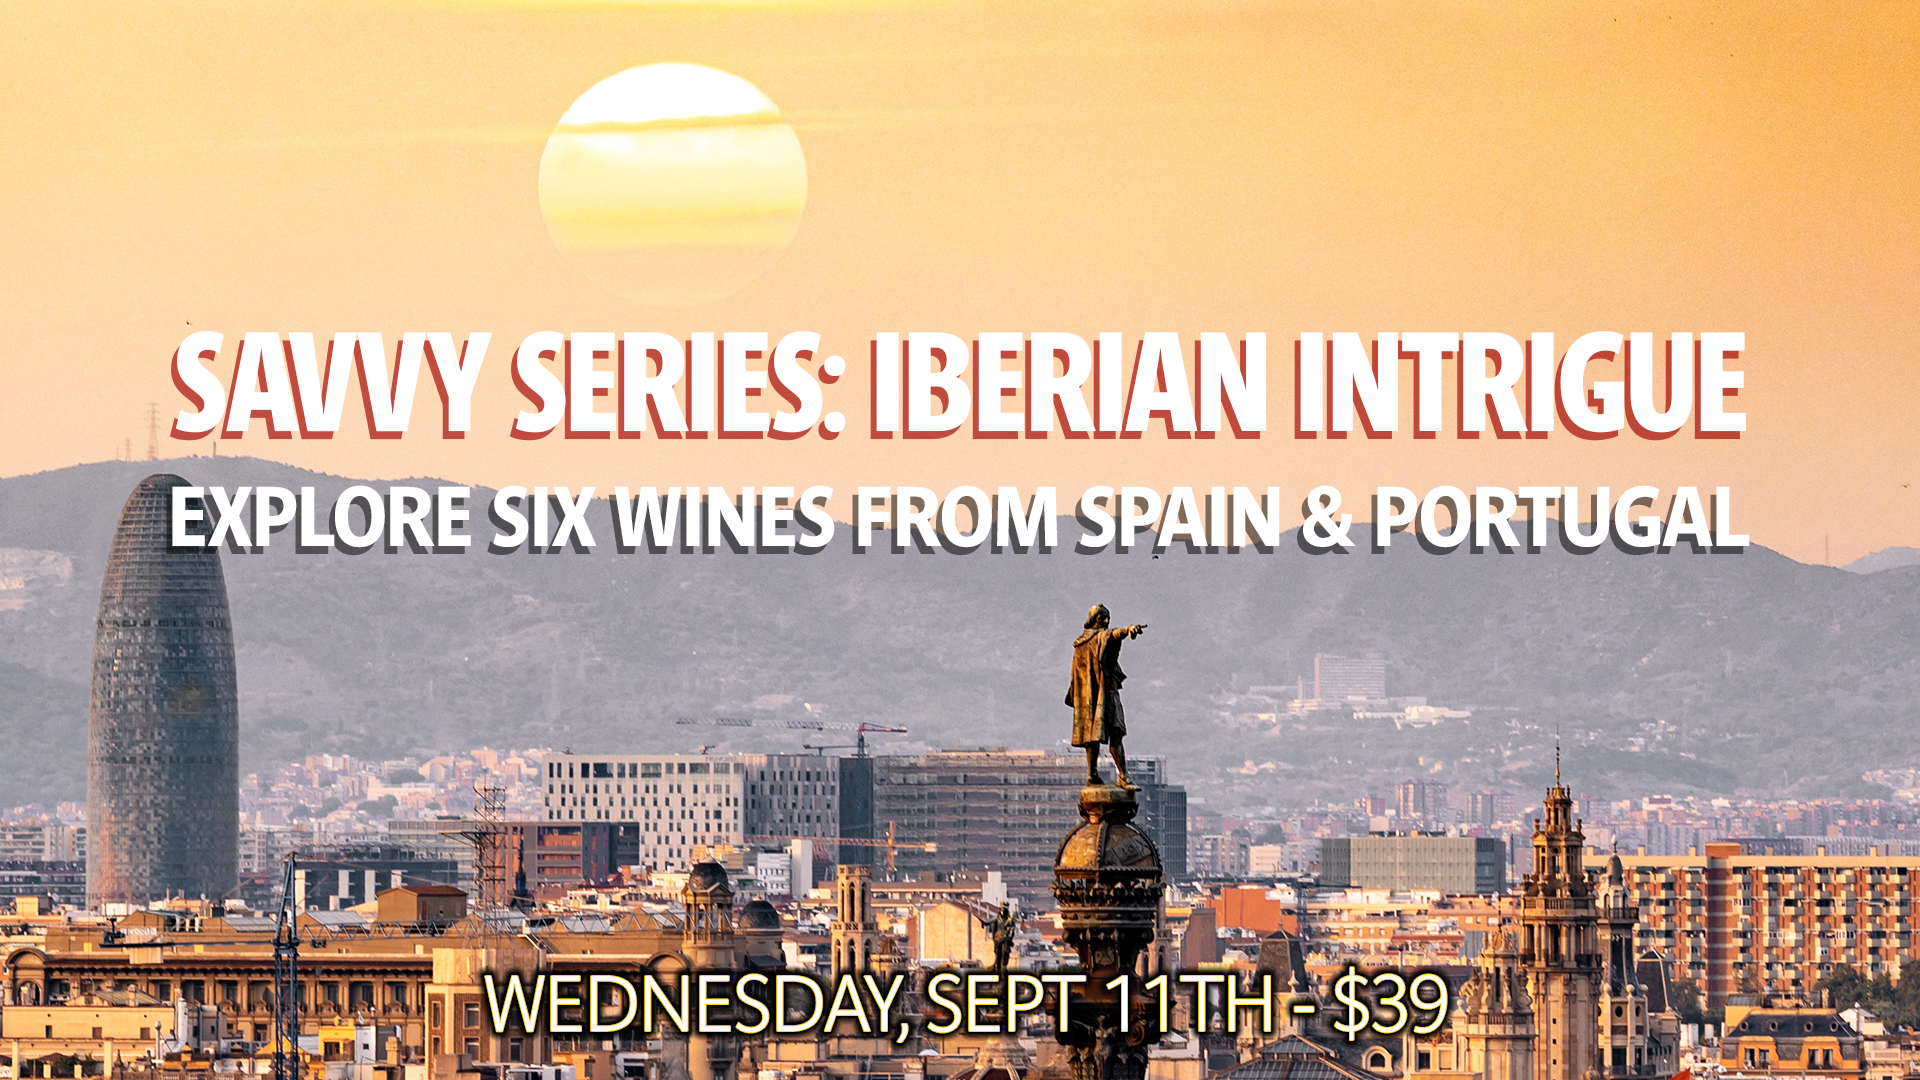 savvy-series-iberian-intrigue.jpg